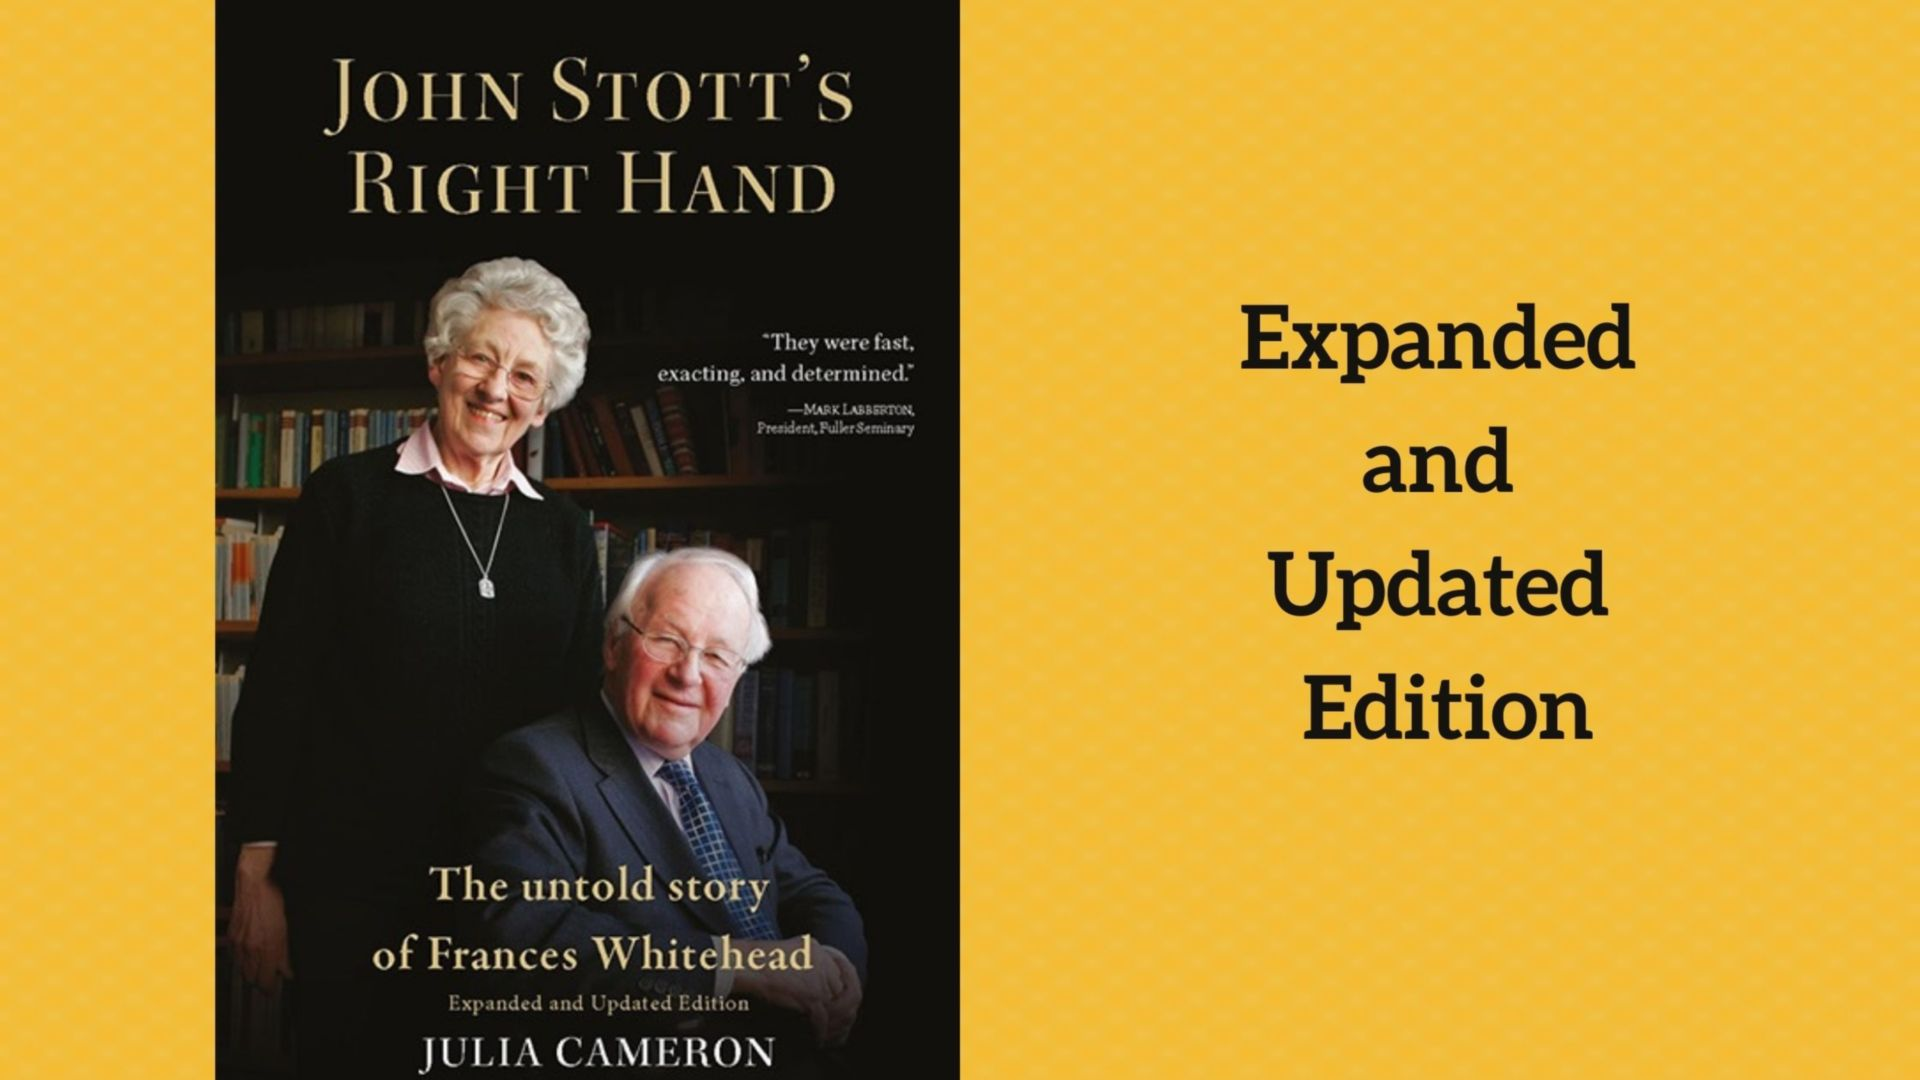 Expanded and updated version of the book John Stott's Right Hand